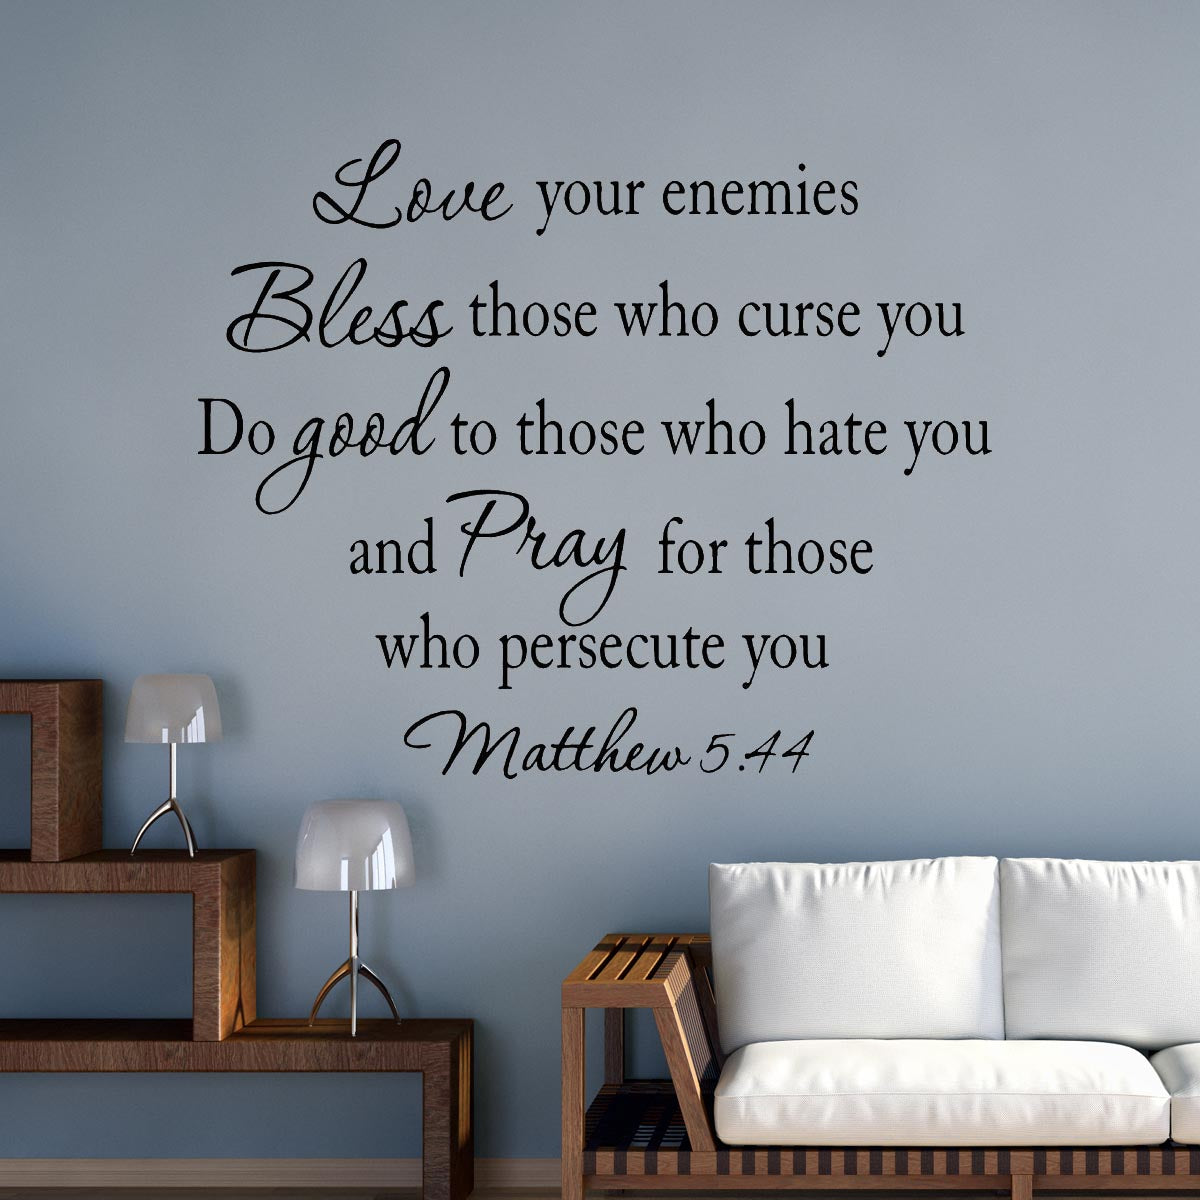 VWAQ Love Your Enemies Matthew 5:44 Vinyl Wall Decal